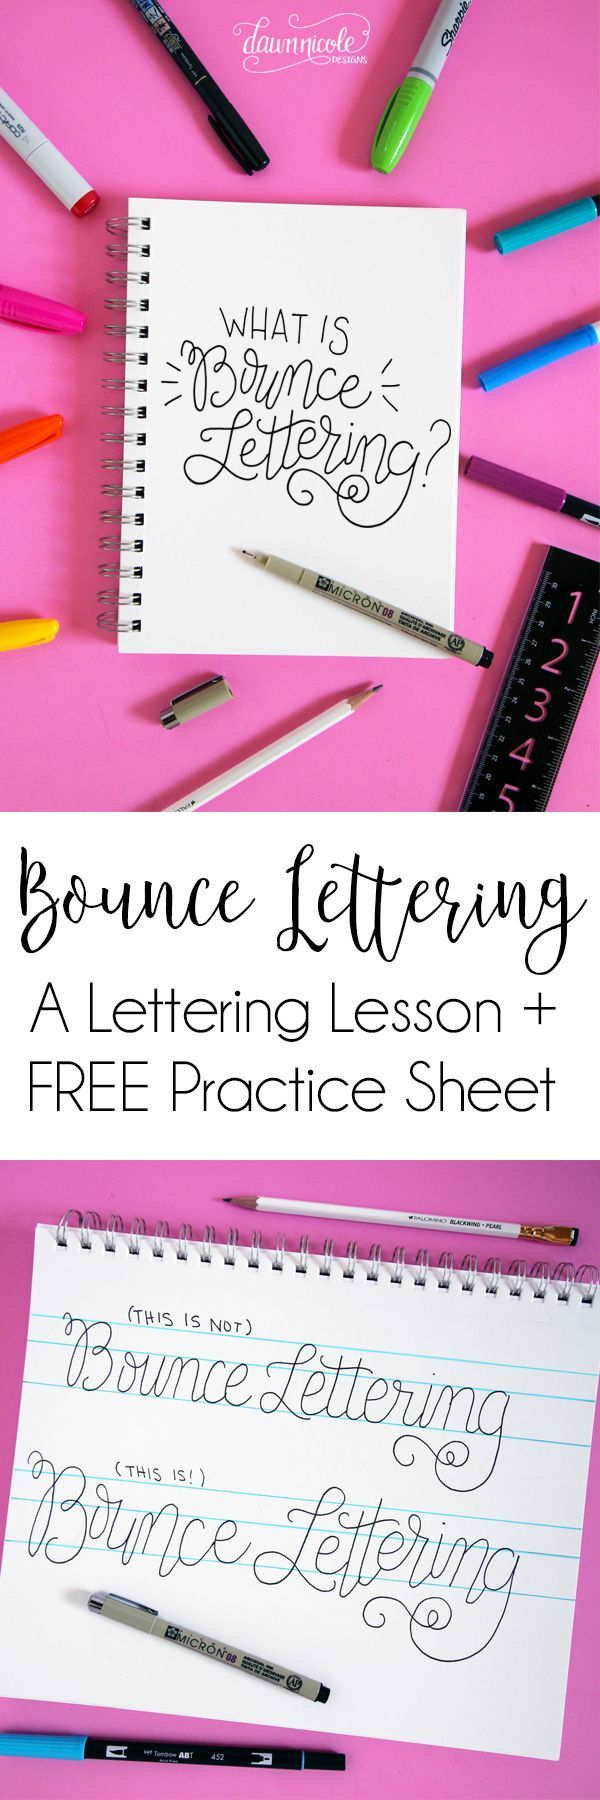 How to Do Bounce Lettering. What is Bounce Lettering? Find out in this lettering tutorial and grab the FREE Bounce Lettering Worksheet to practice!   http://dawnnicoledesigns.com